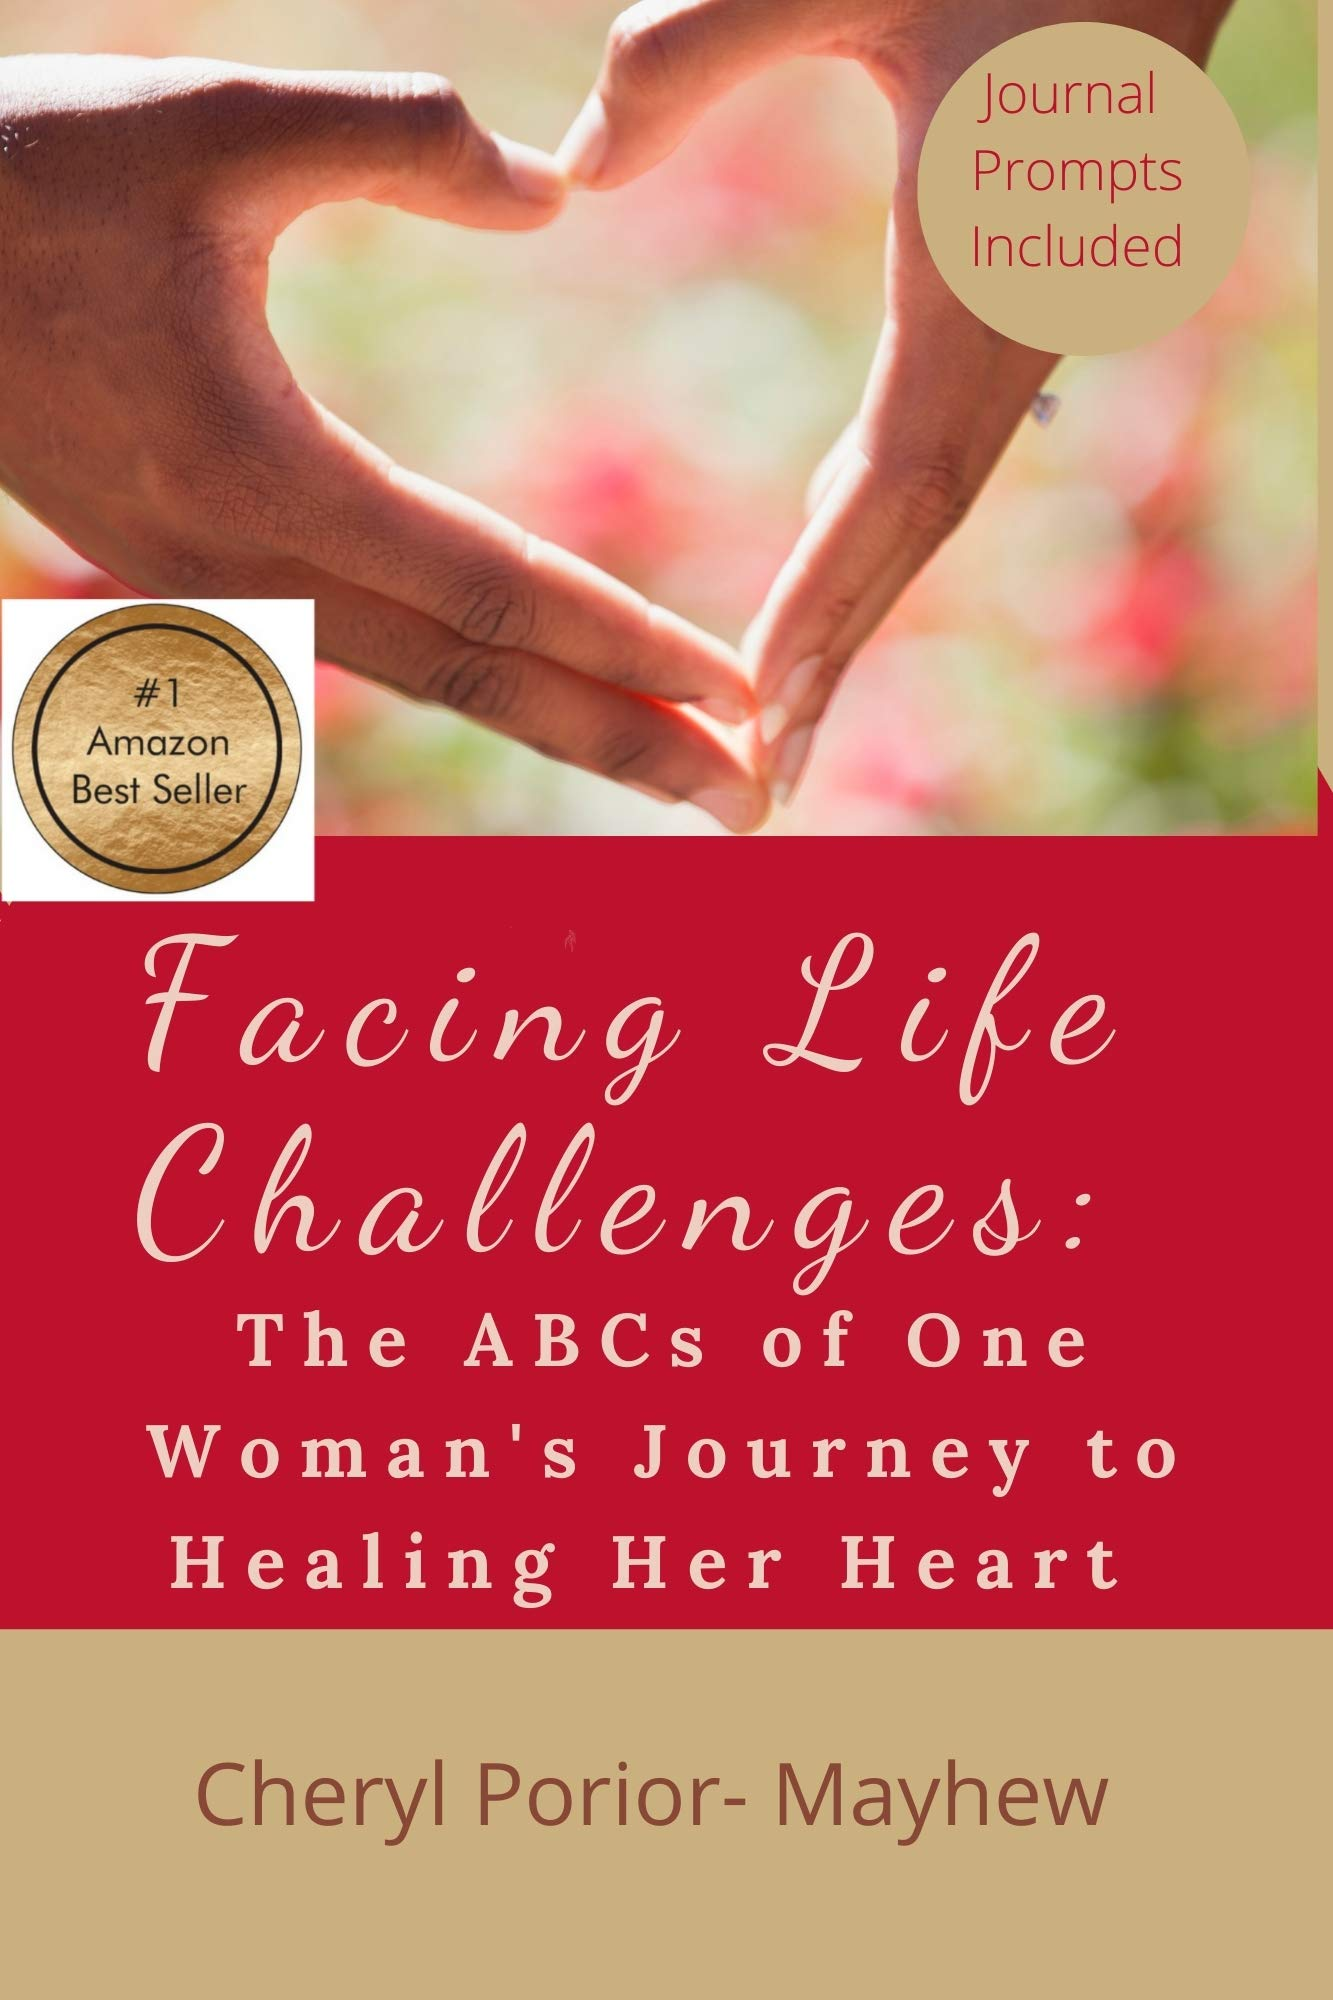 Facing Life Challenges: The ABCs of One Woman's Journey to Healing Her Heart